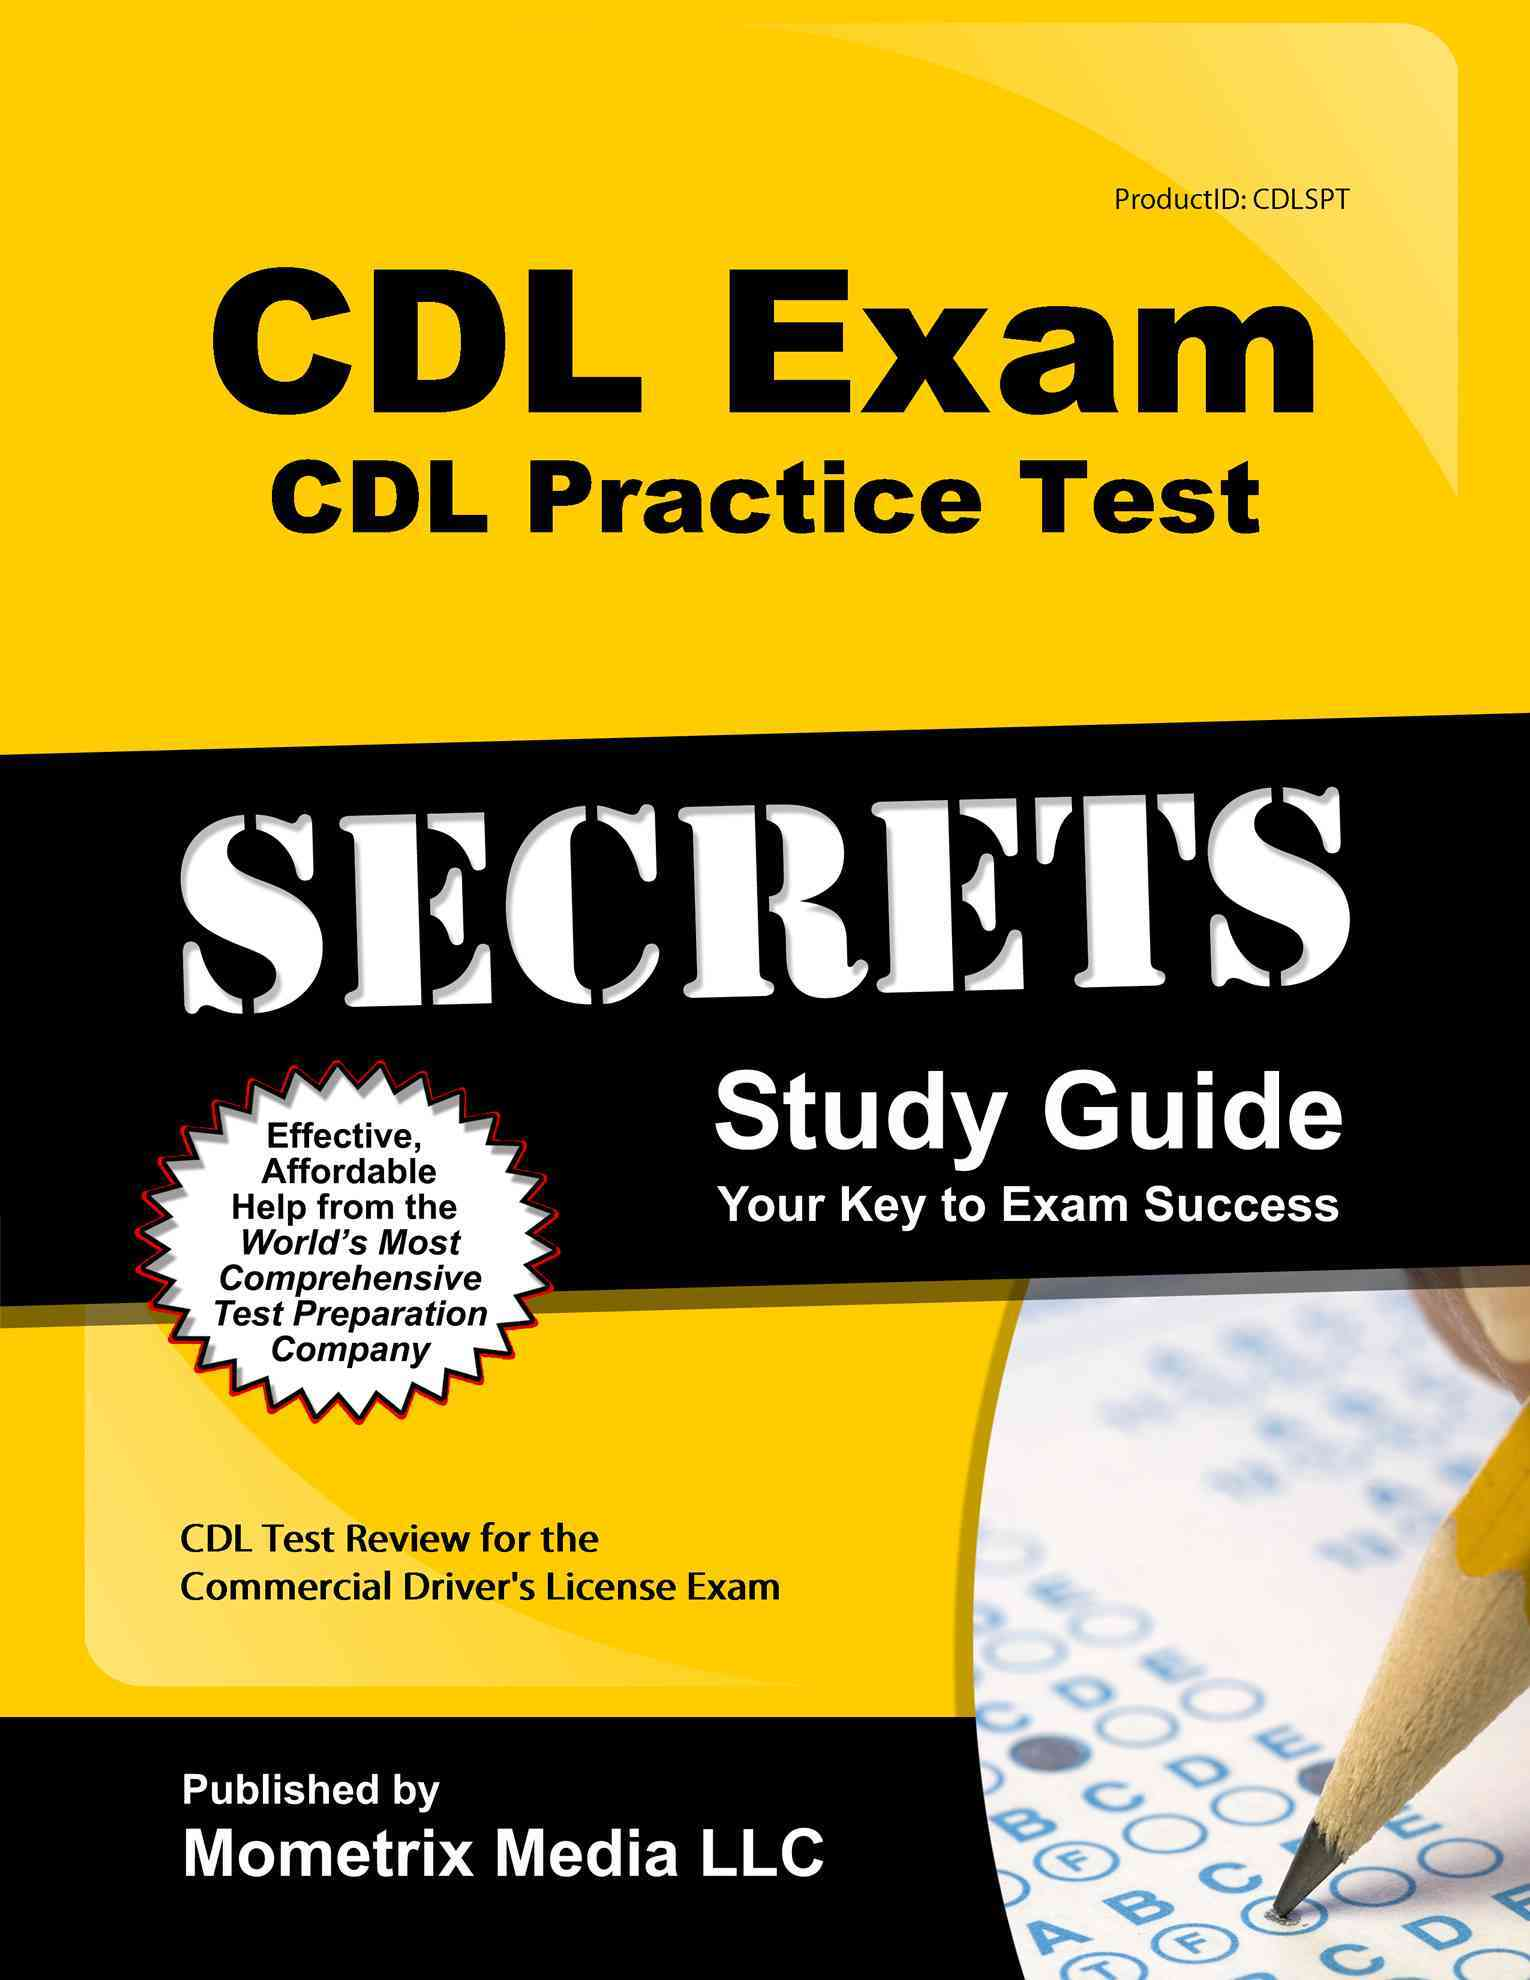 Cdl Exam Secrets - Cdl Practice Test Study Guide By Cdl Exam Secrets (EDT)